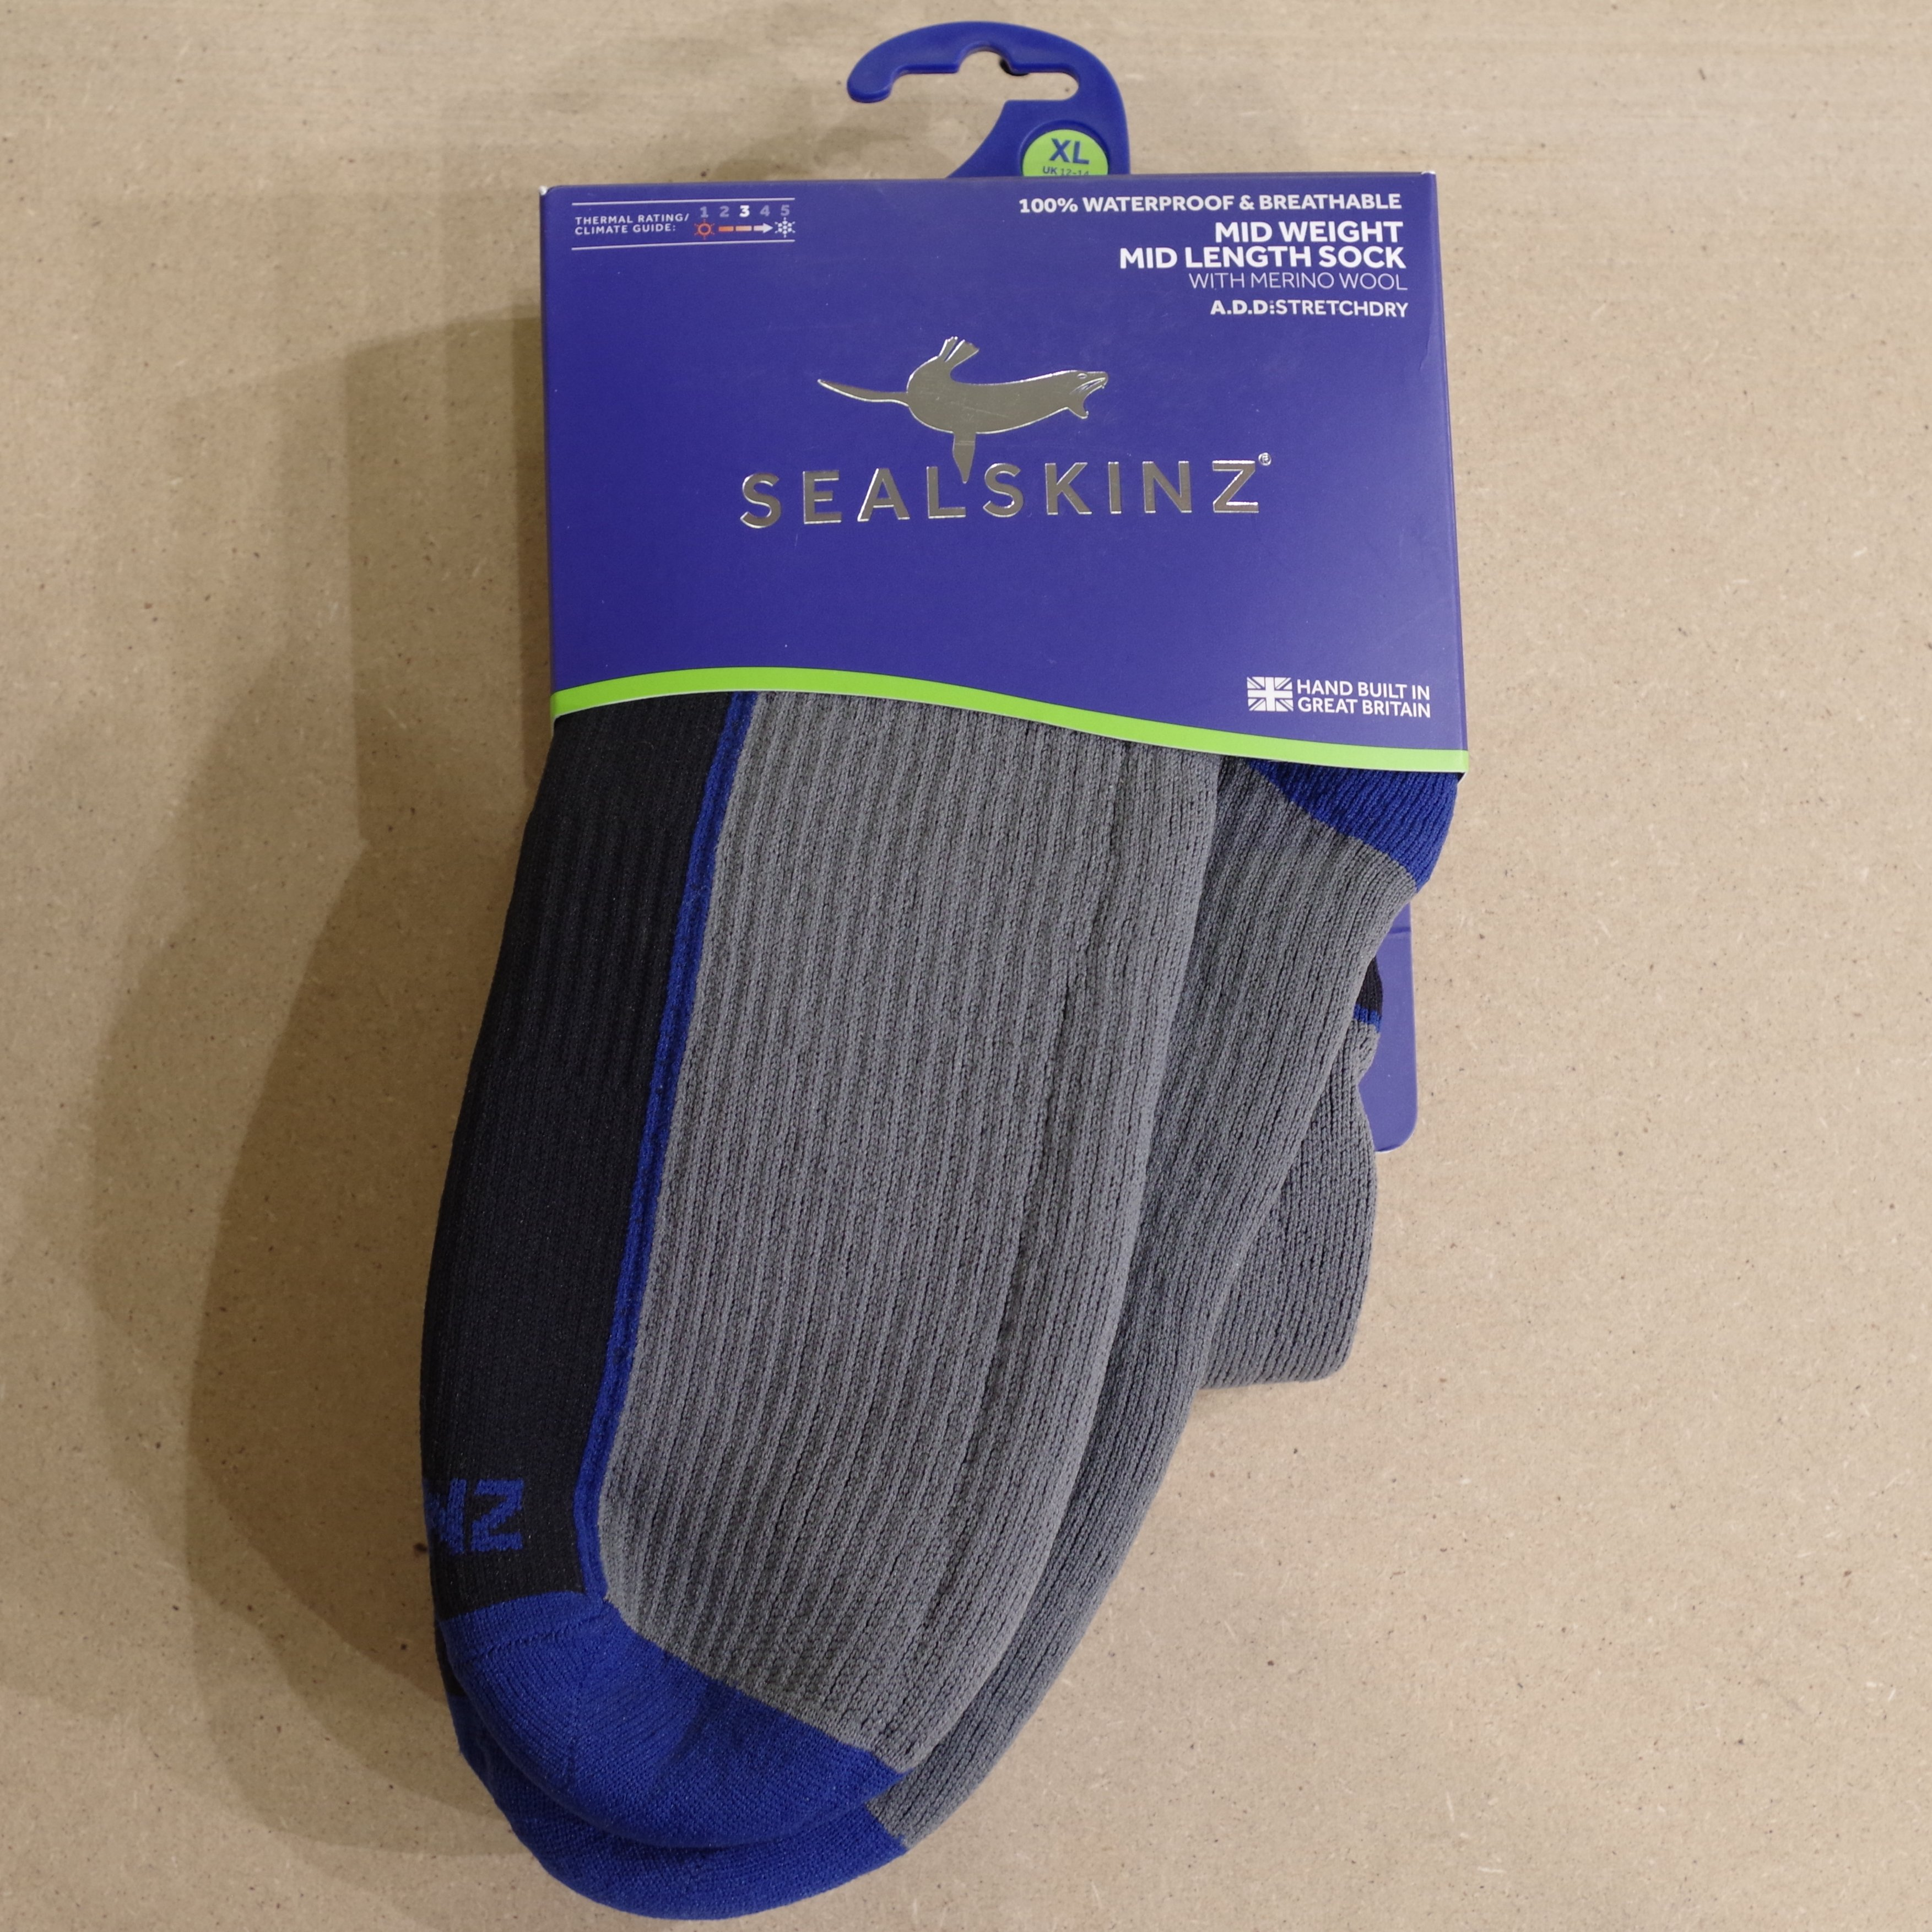 cheap sale to buy really comfortable Sealskinz Mid Weight Mid Length Extra Large Waterproof socks